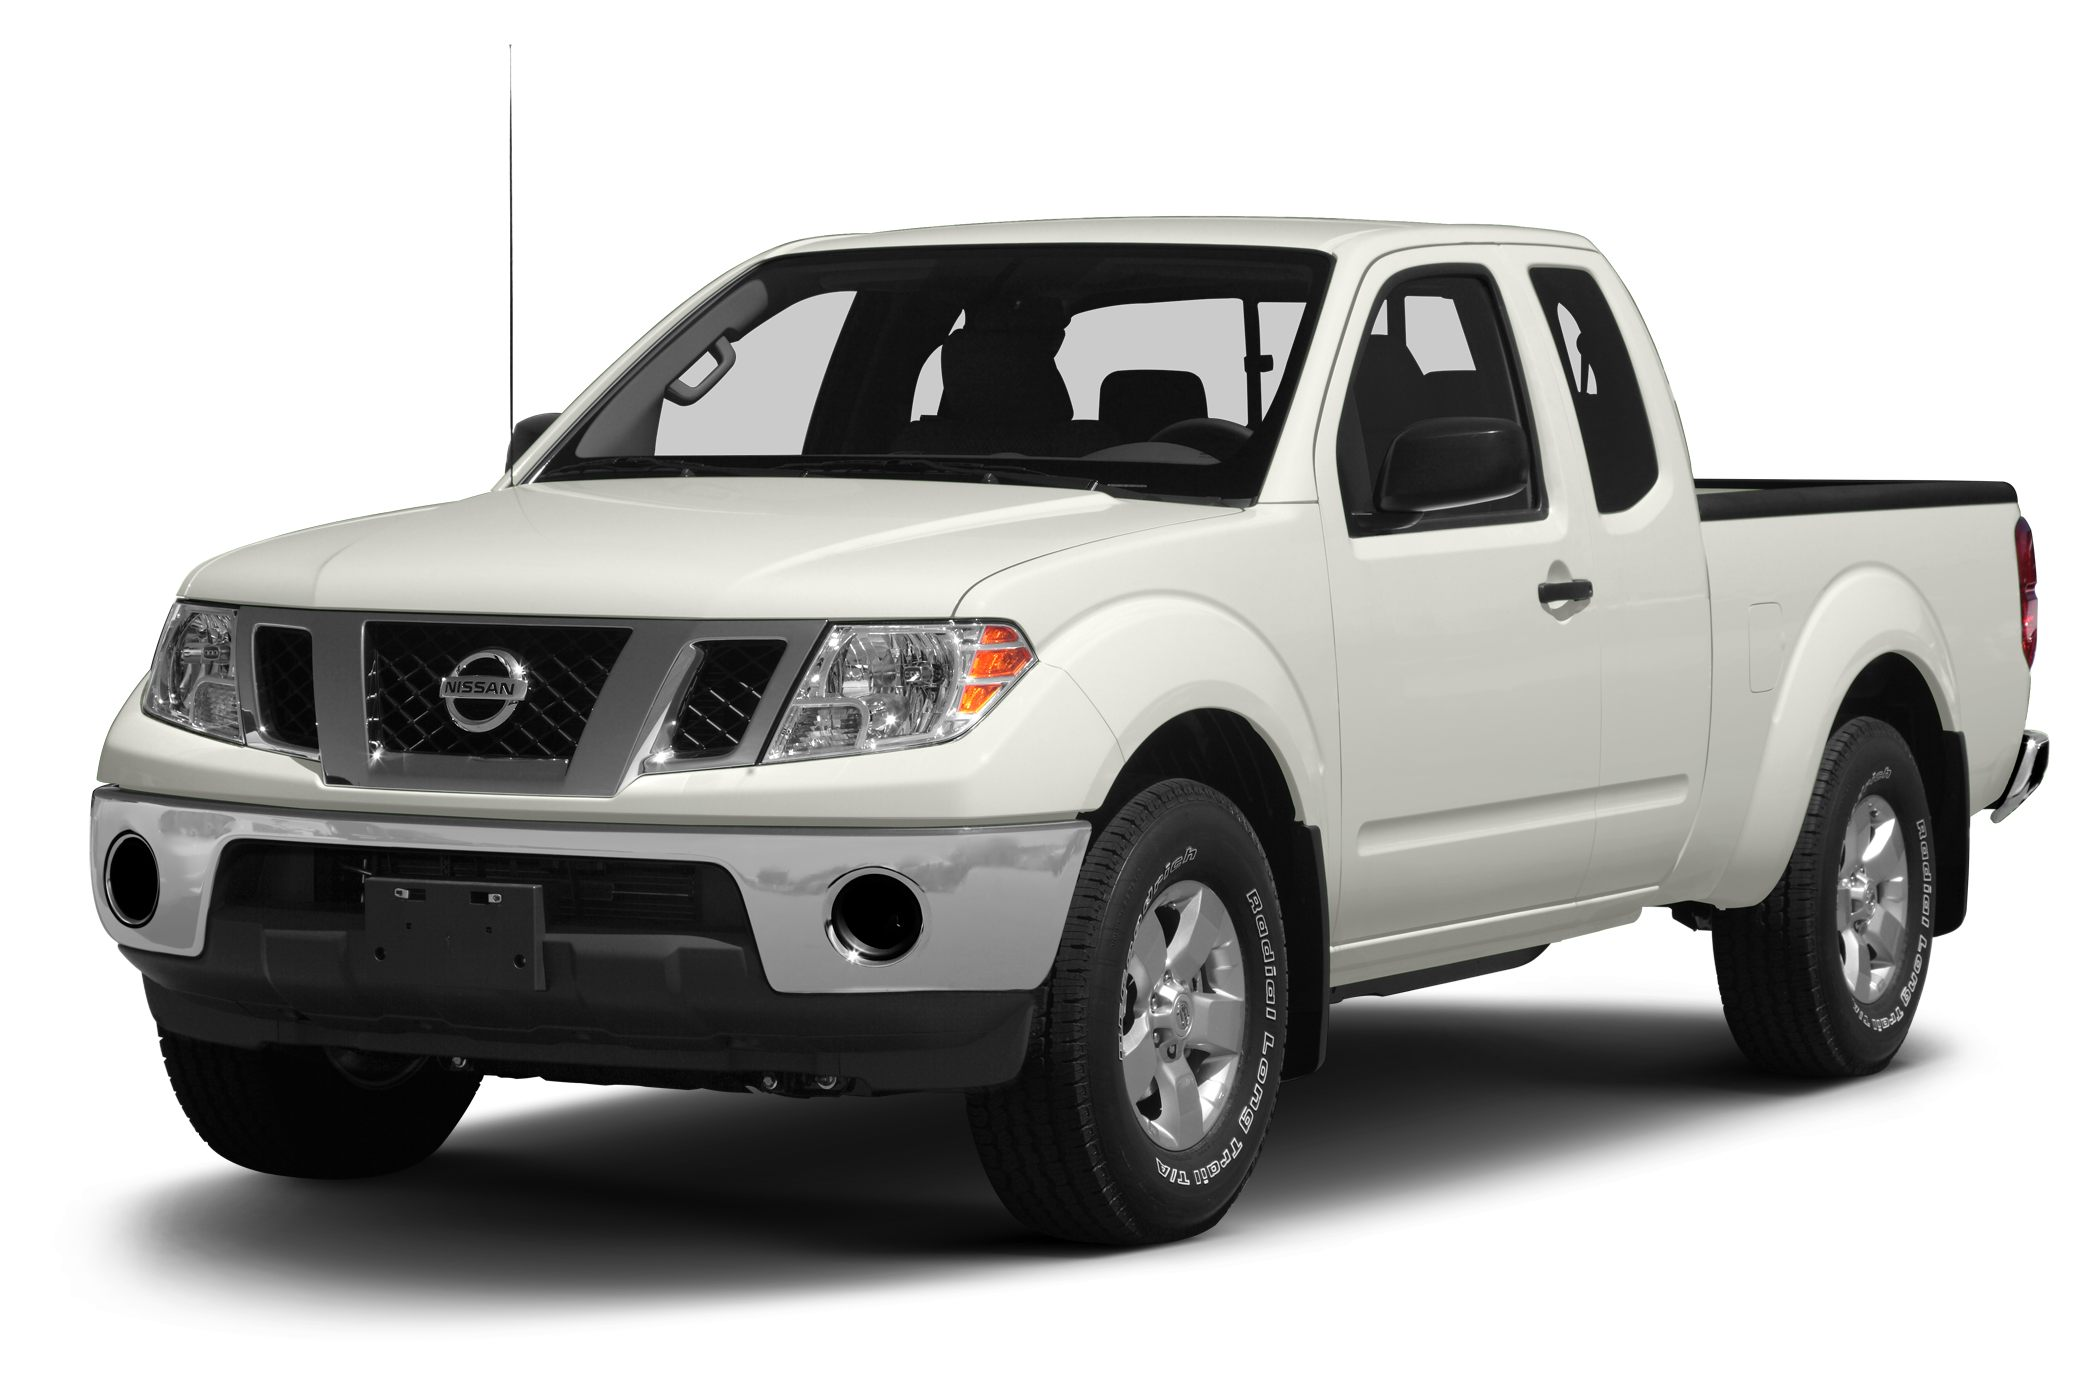 2012 Nissan Frontier SV-I4 Extended Cab Pickup for sale in Vienna for $0 with 41,612 miles